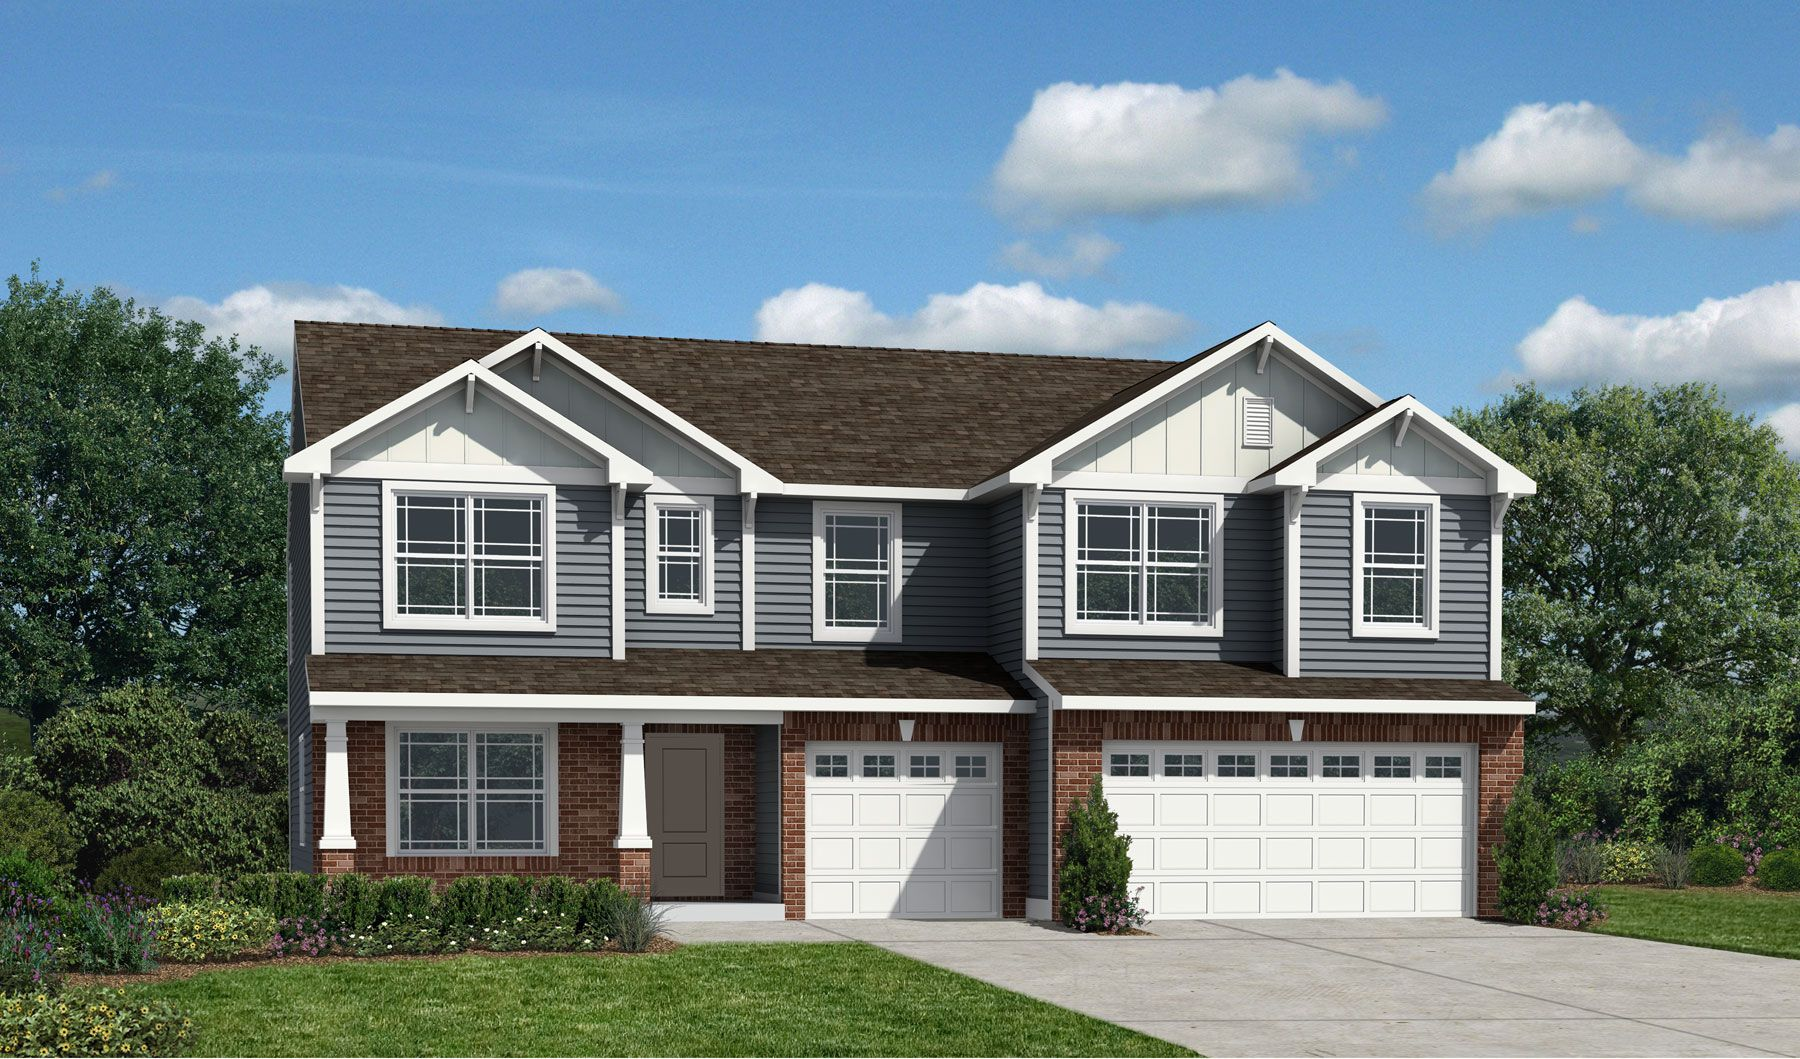 Campton - Winding Ridge-Fairways East: Indianapolis, IN - Westport Homes of Indianapolis